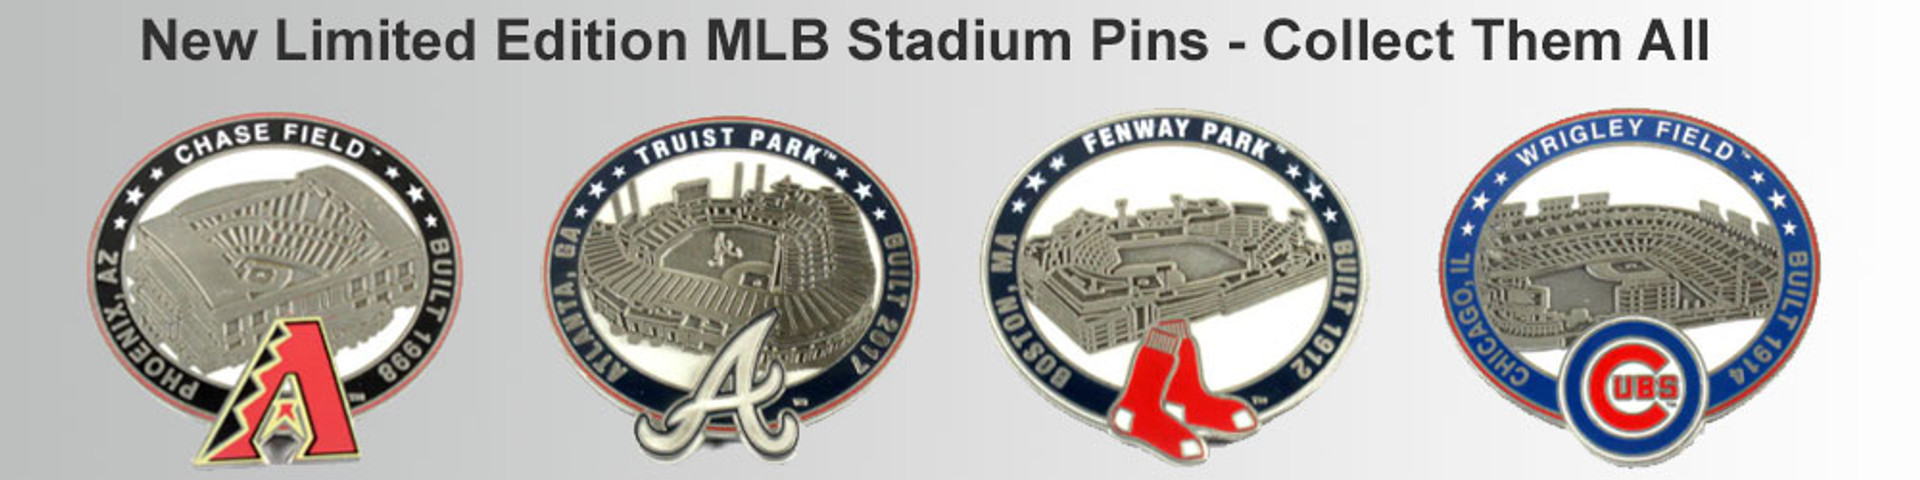 MLB Stadium Pins